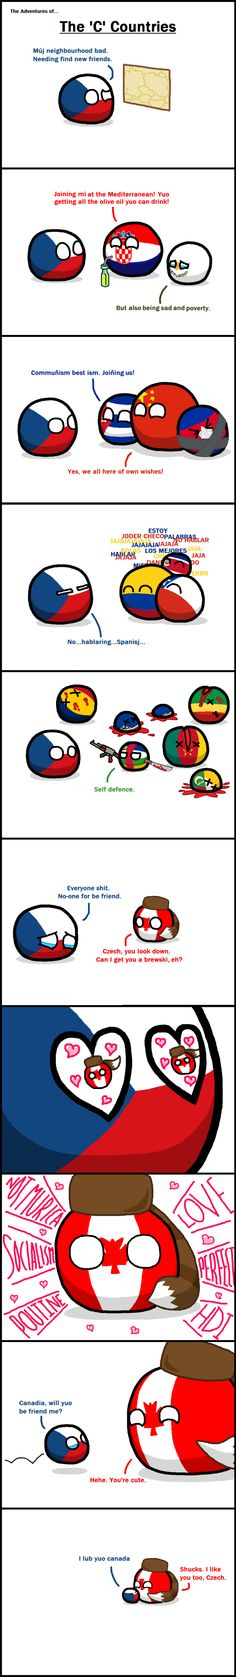 Adventures of the C countries.